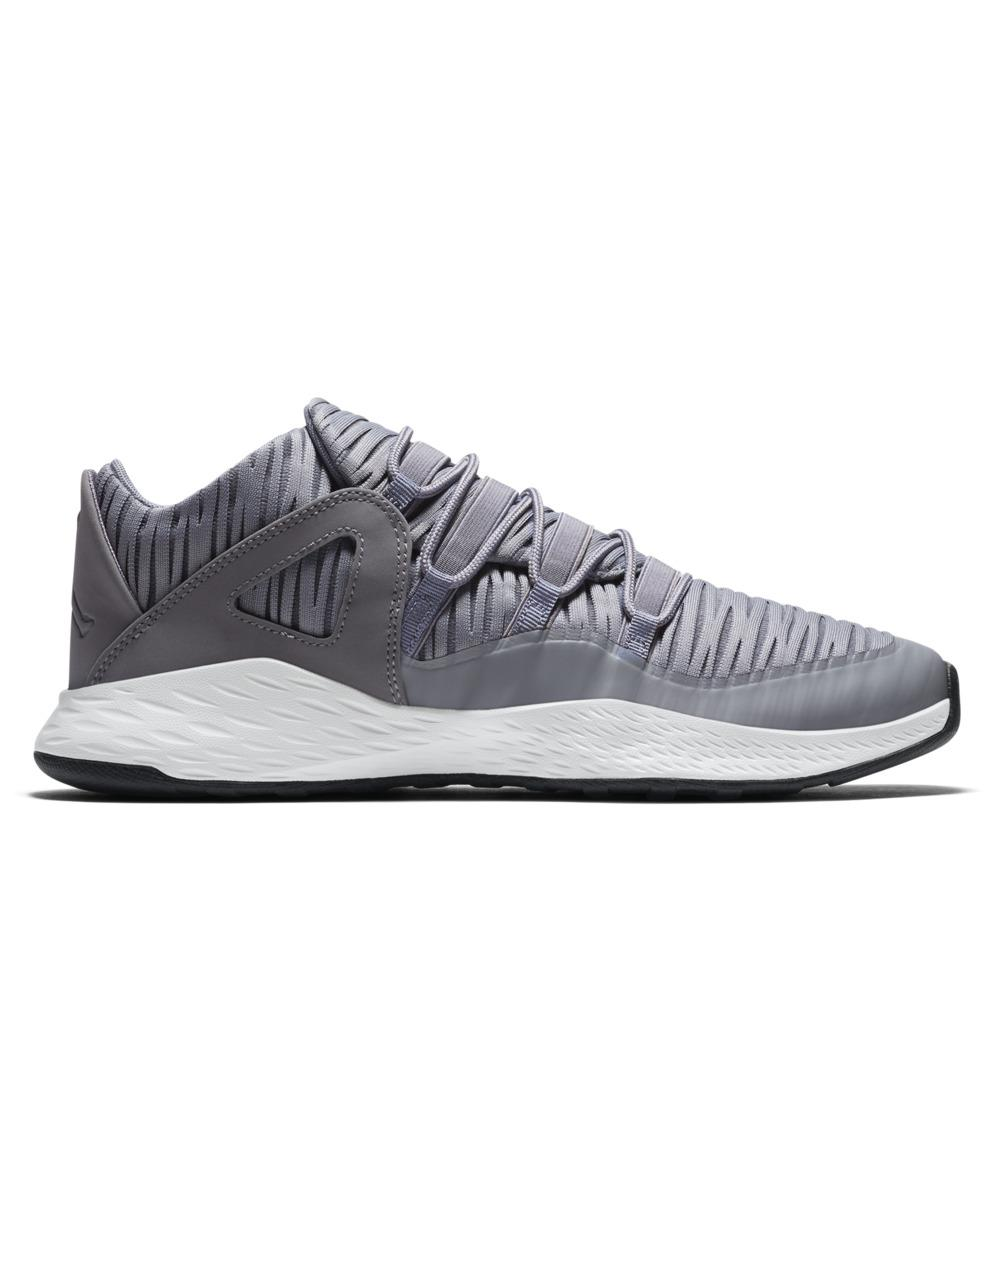 5ec563b0b417 Lyst - Nike Jordan Formula 23 Casual Trainers in Gray for Men